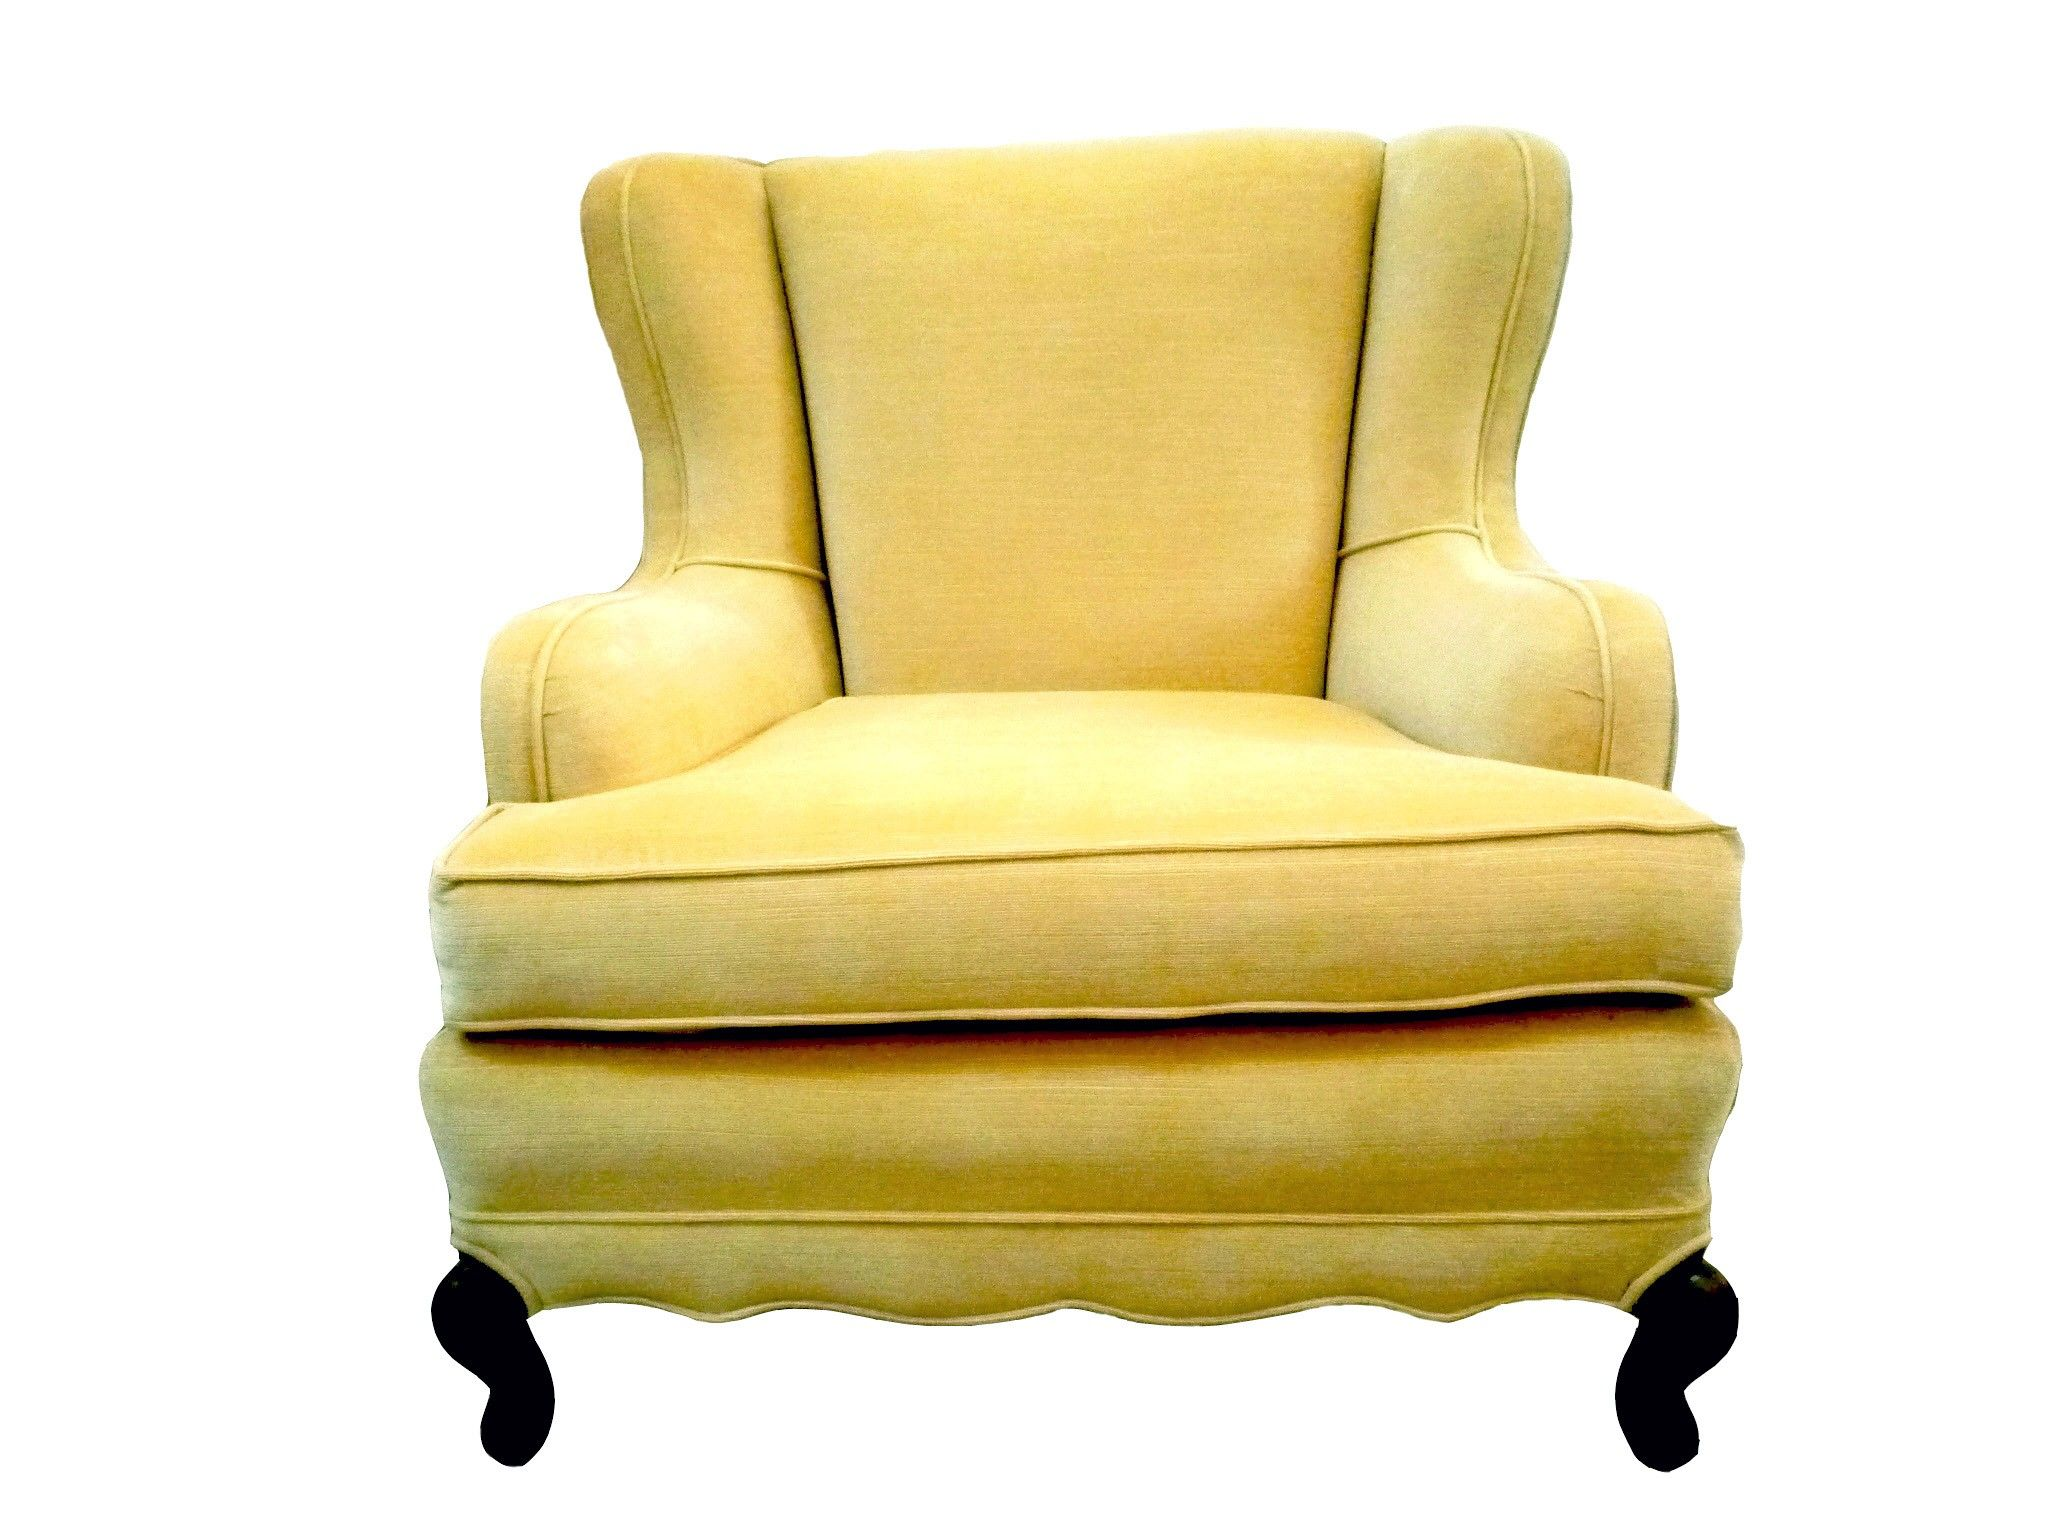 vintage mustard yellow chair  Color Theme Mustard